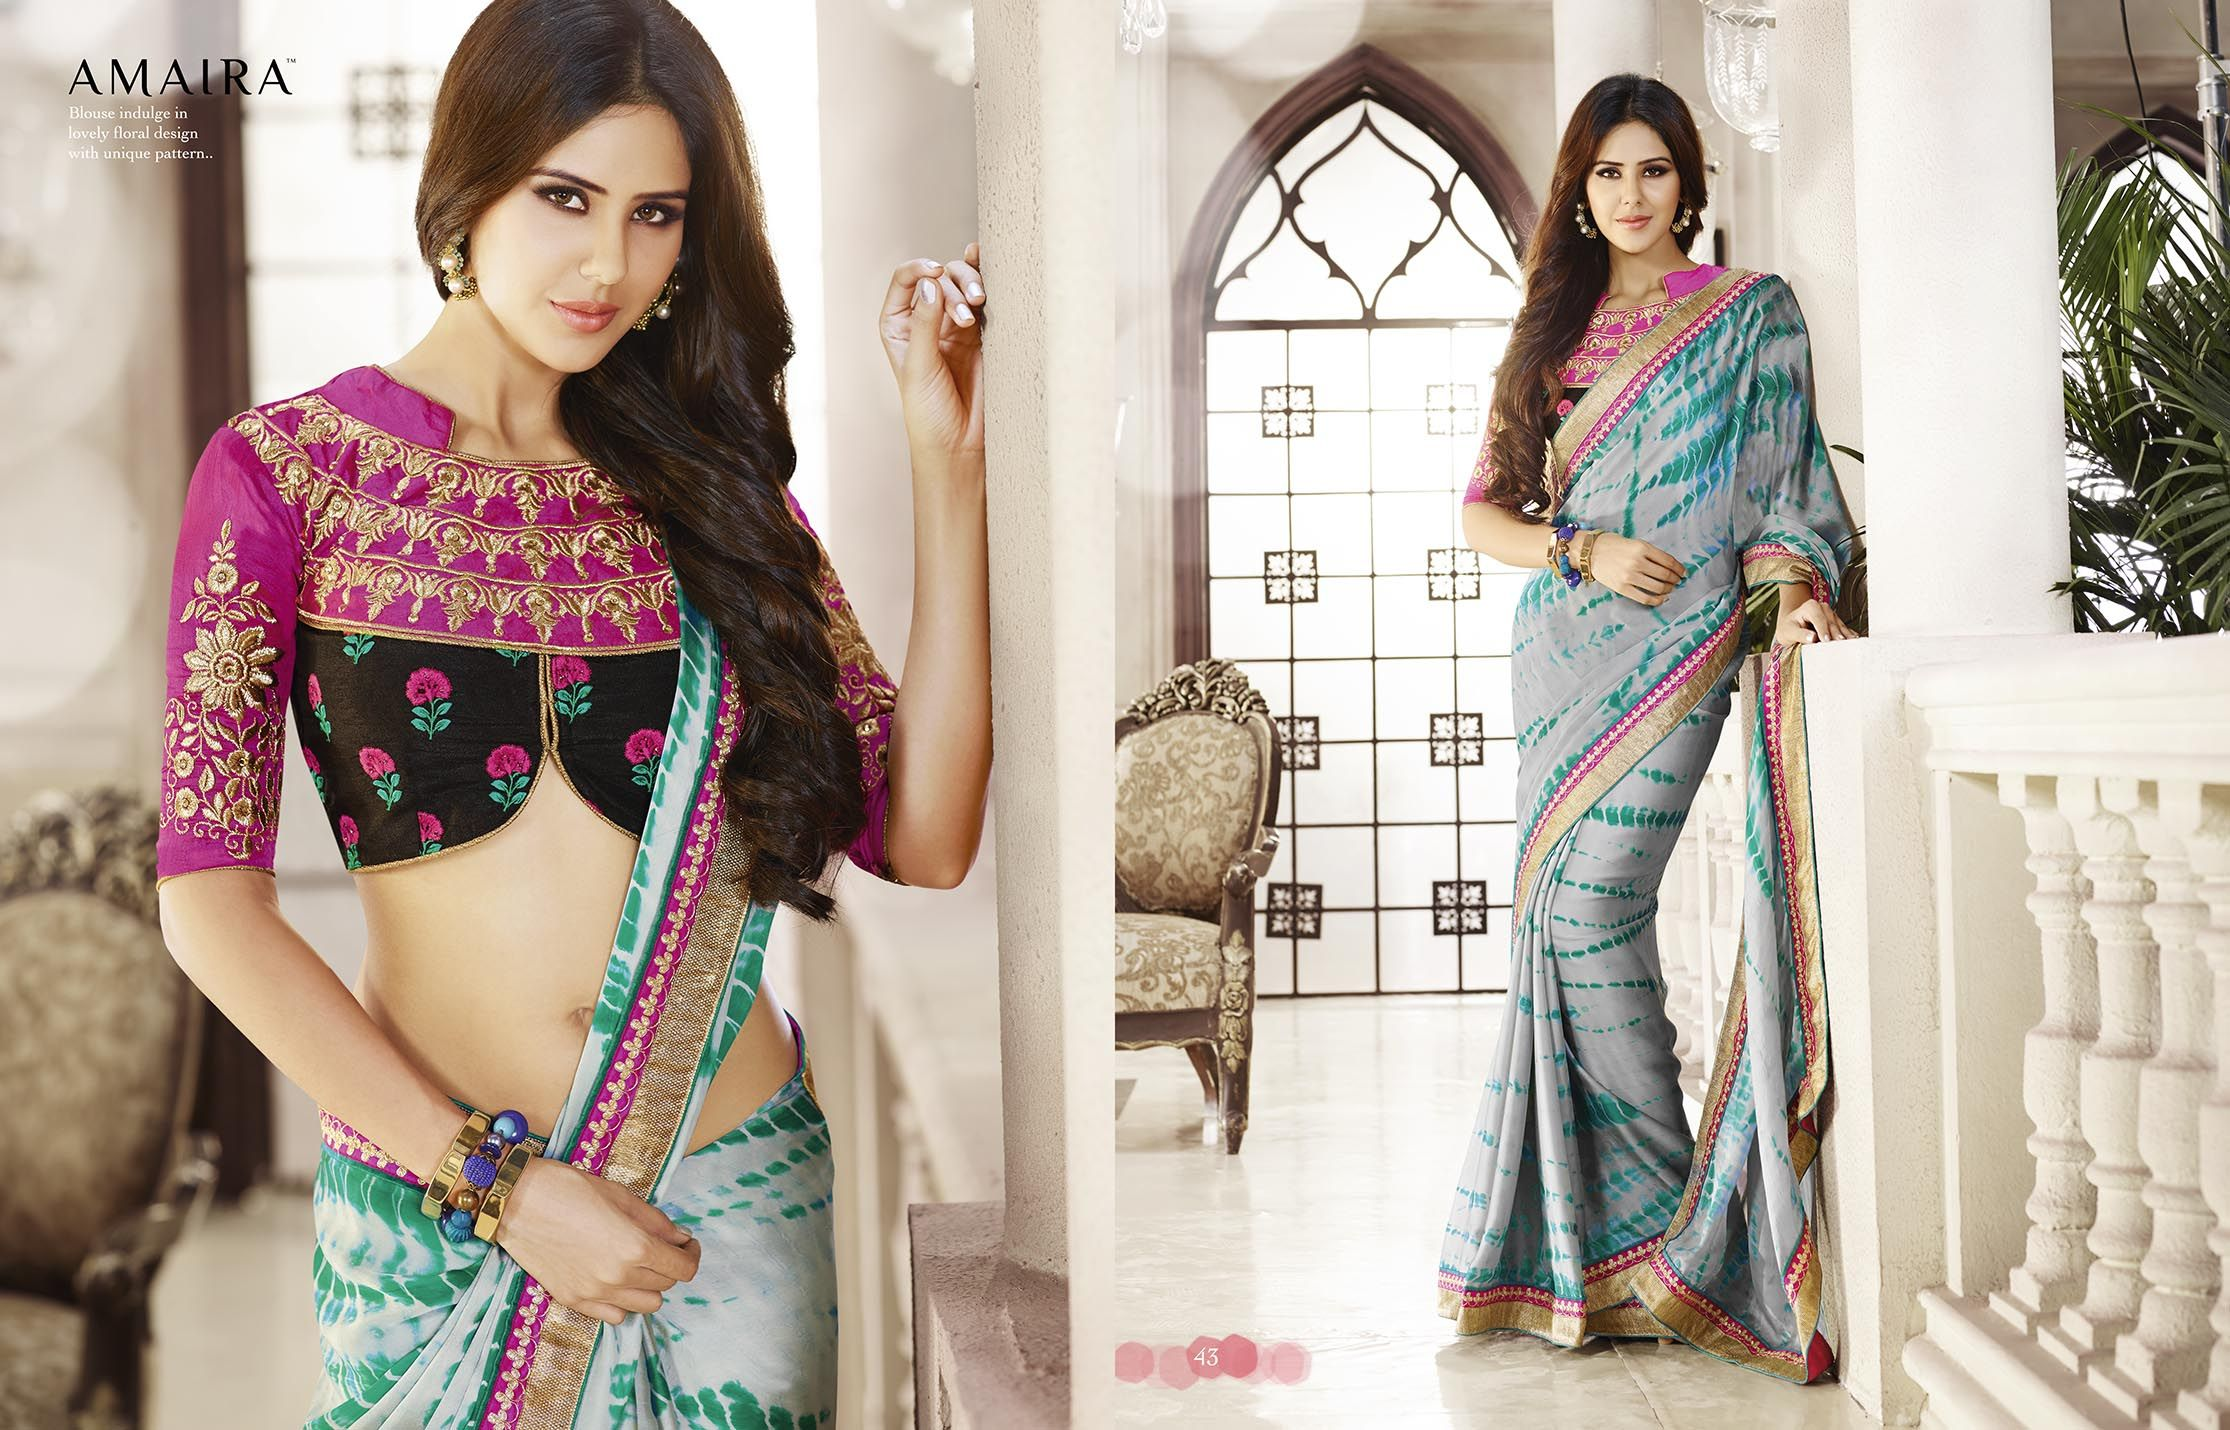 Georgette Designer Saree Range:- INR 3807/-  Shipping (India) :- Free Shipping All Over India  Shipping (Overseas) :- Worldwide Shipping Available  For Orders:- visit www.baawli.com or contact +91 9870725209  Added Facility:- Next Day delivery in Mumbai and Ahmedabad  #saree #sari #india #indiansaree #indianfashion #womenfashion #fashion #ethnic #ethnicwear #ladieswear #indianwear #indianethnicwear #shopping #onlineshopping #worldwideshipping #freeshippingforindia #baawlifashions